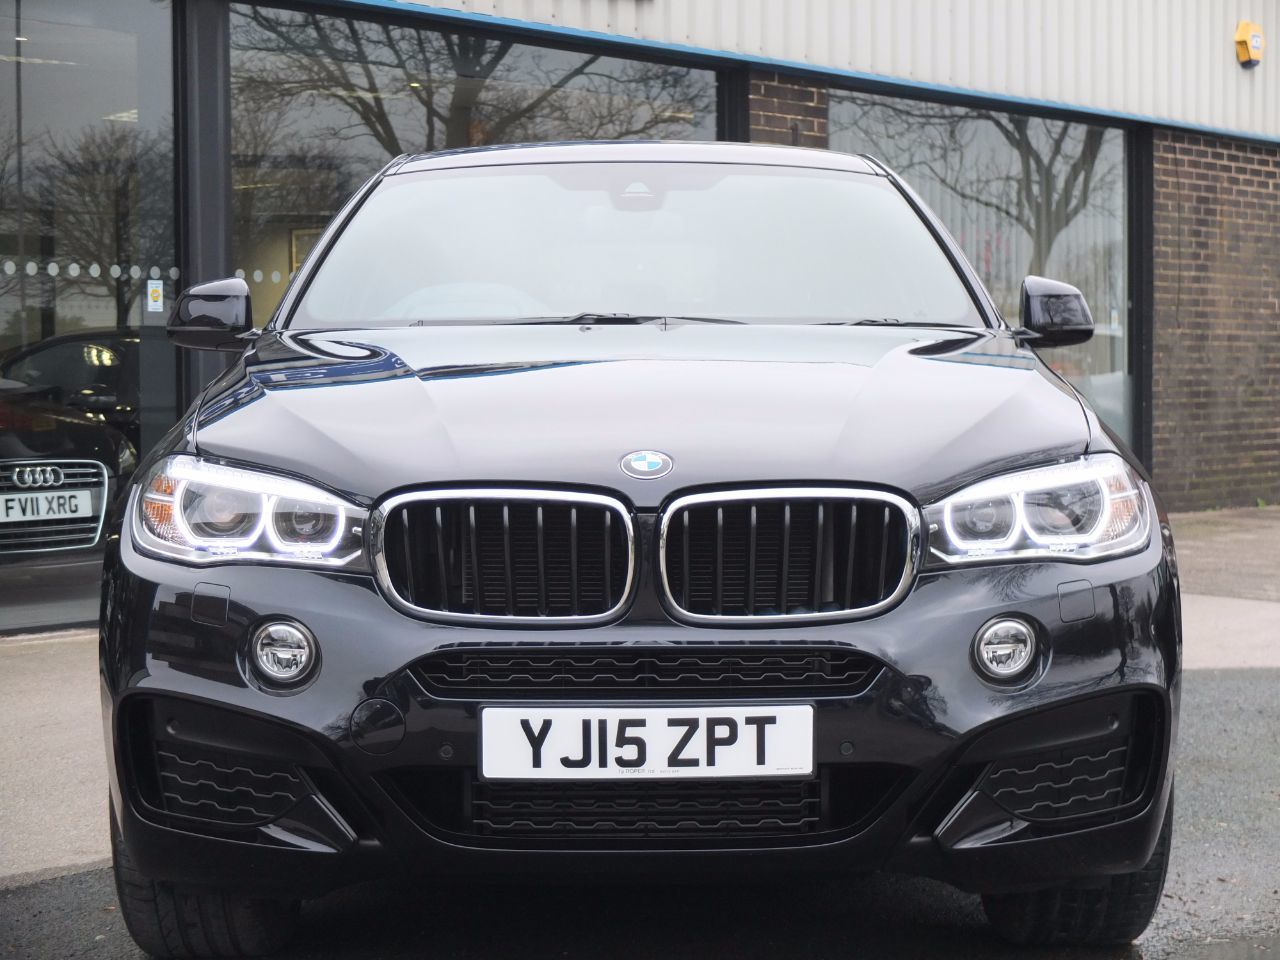 BMW X6 3.0 xDrive30d M Sport Auto Coupe Diesel Carbon Black Metallic